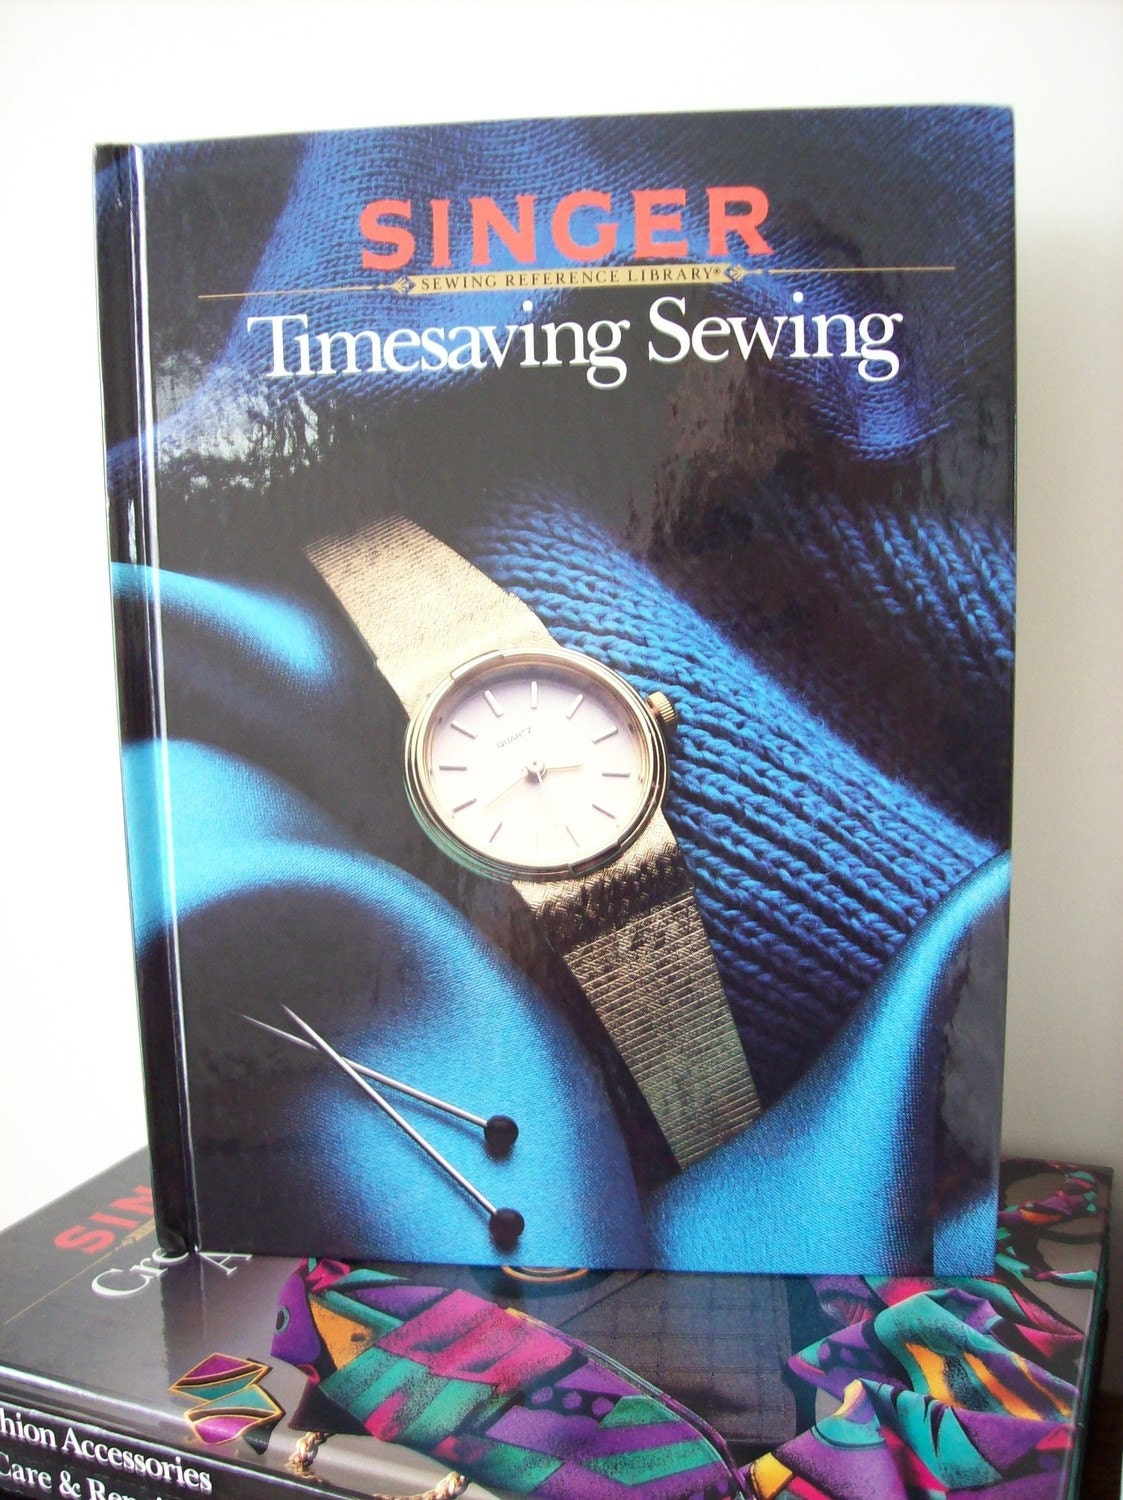 Timesaving Sewing- Singer Sewing Reference Library Book- 1987 Vintage